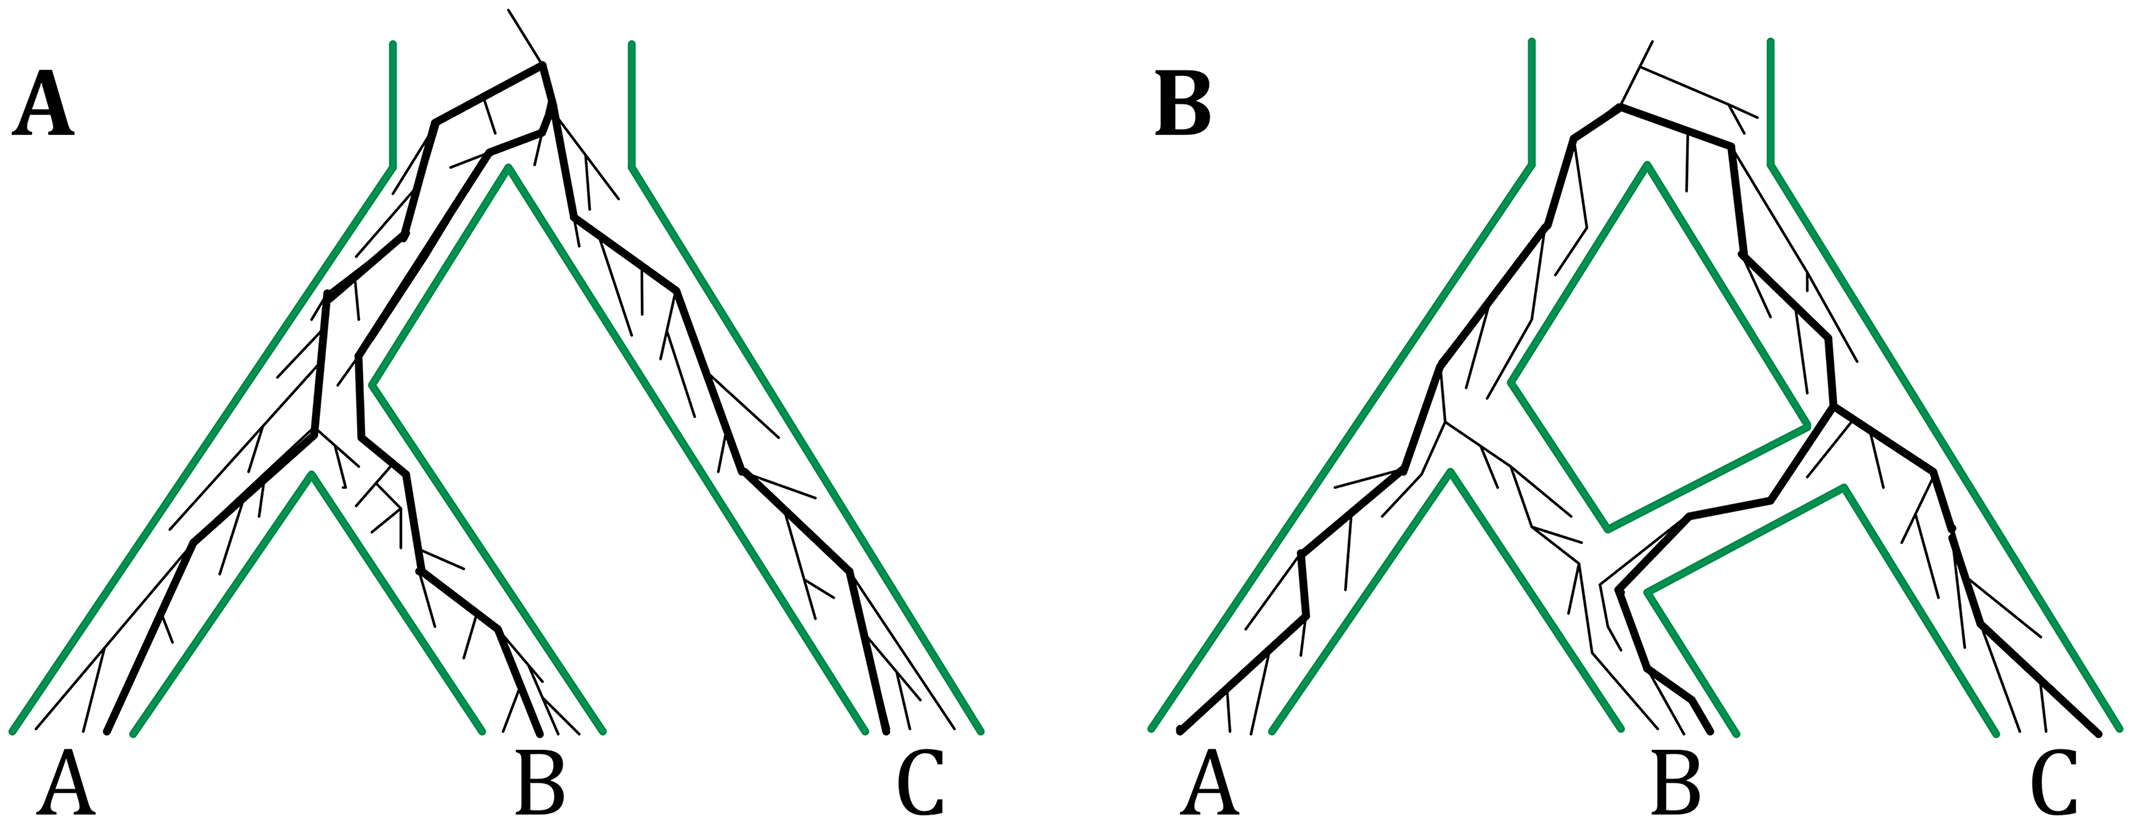 The multispecies coalescent on trees and networks.